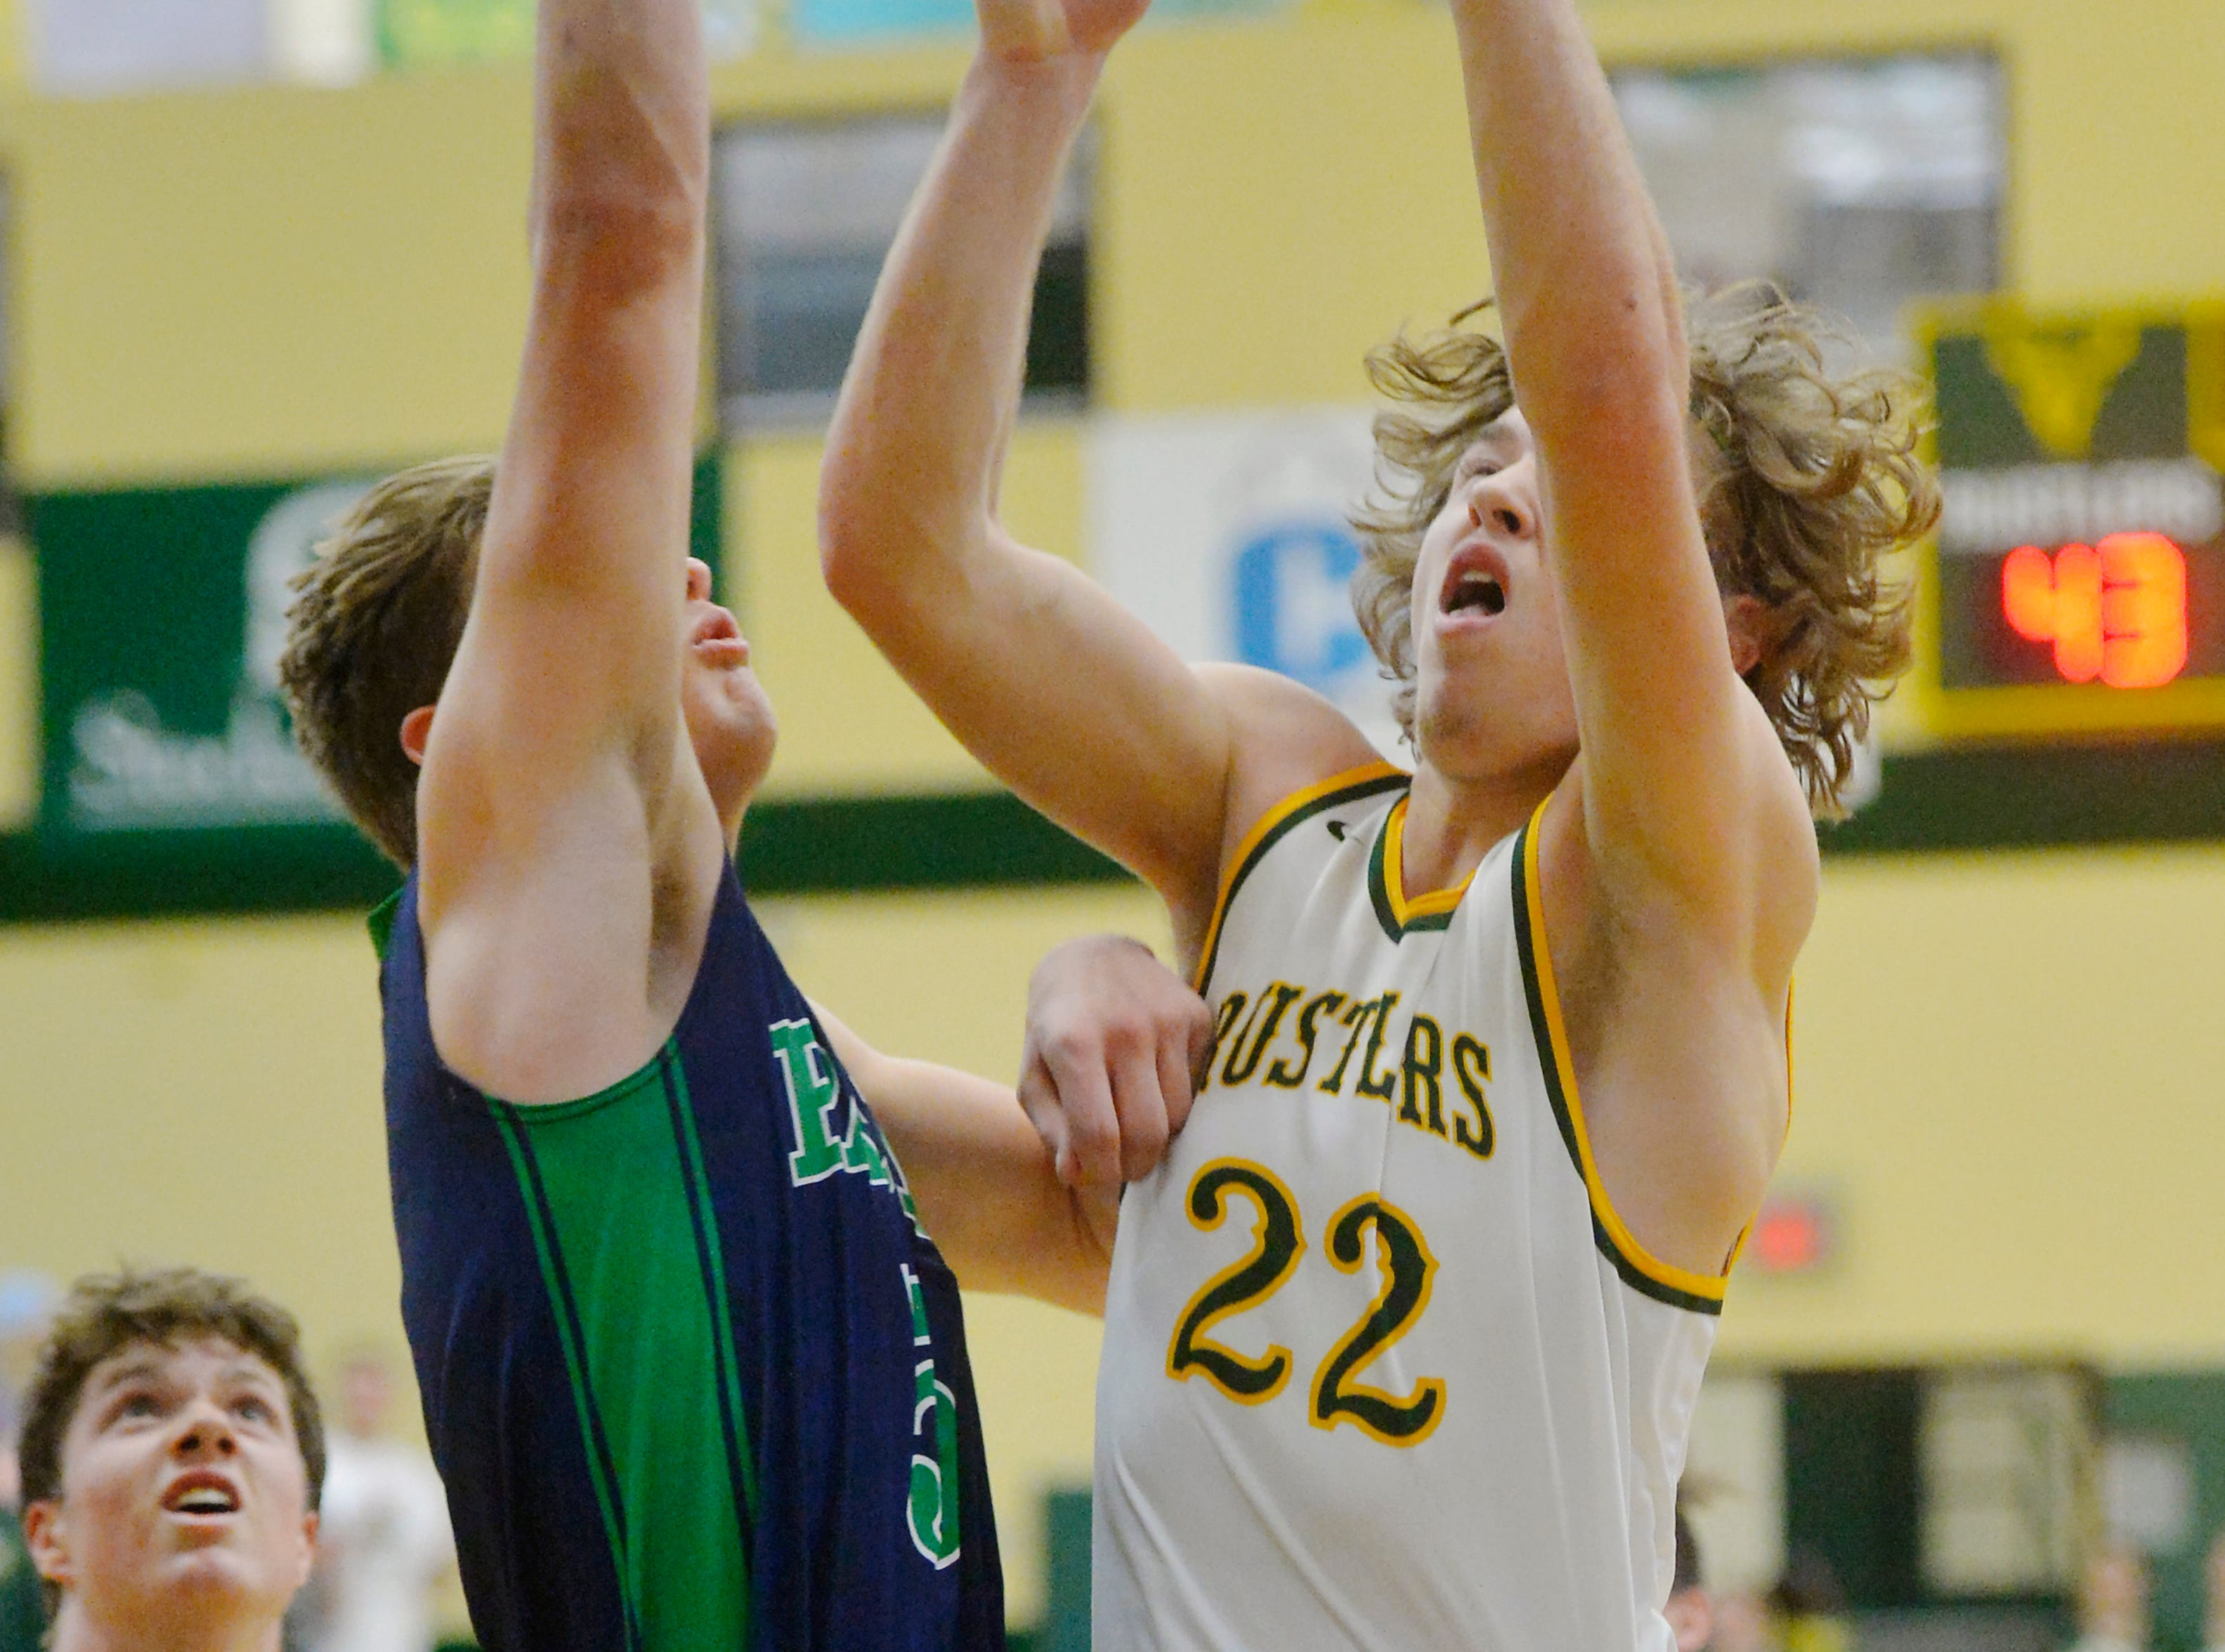 CMR's Keegan Barnes shoots a layup during Friday night's basketball game against Glacier in the CMR Fieldhouse.